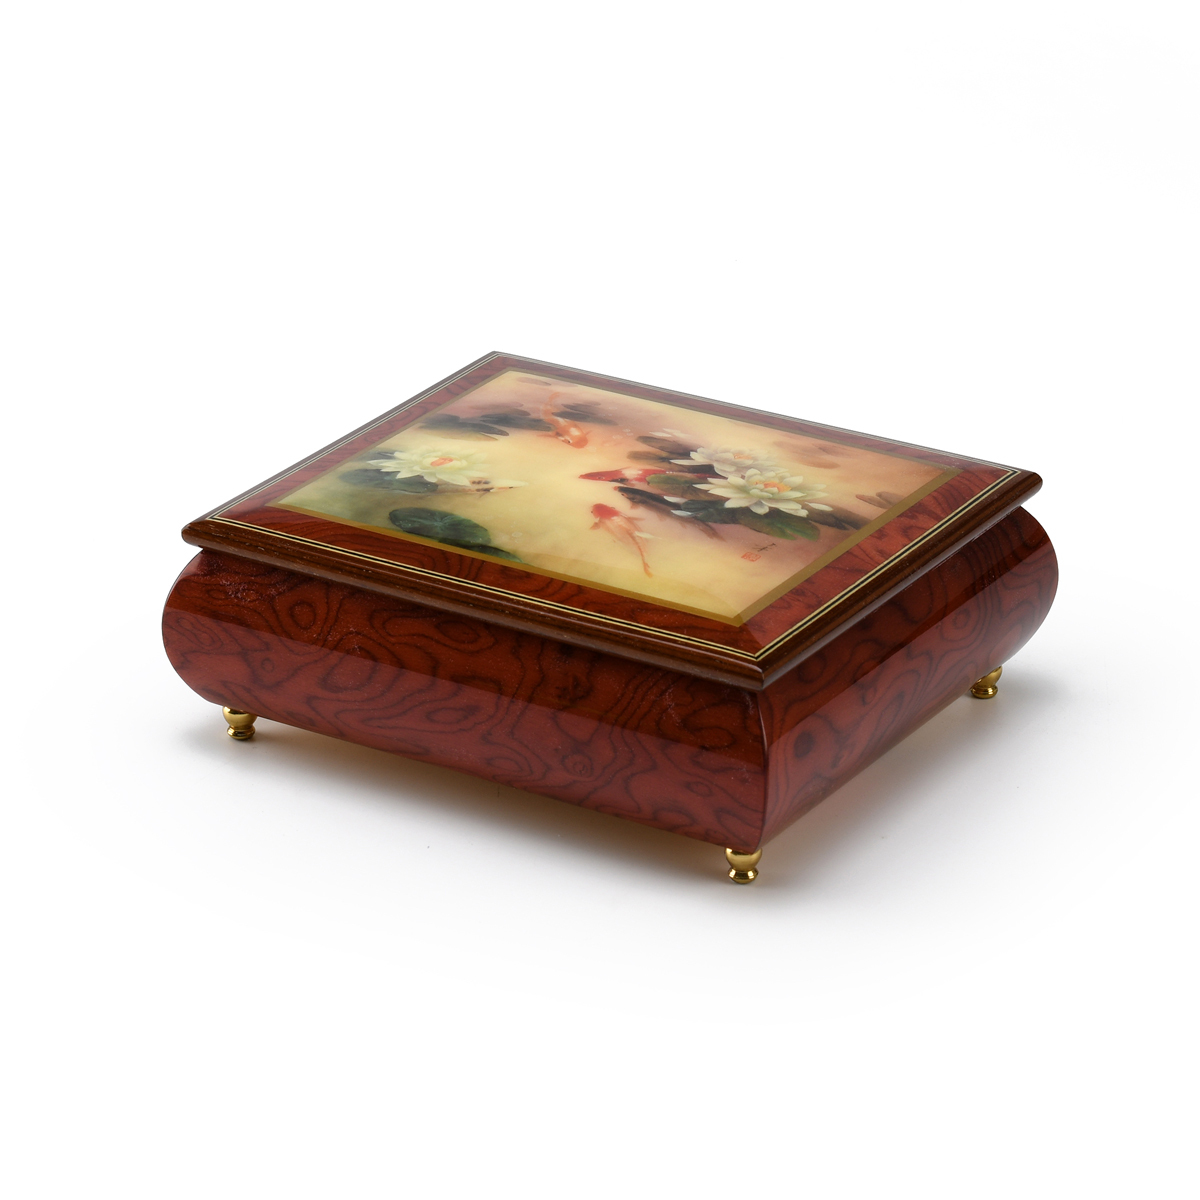 Handcrafted Ercolano Music Box with Painted Scene Lily Pond by Lena Liu